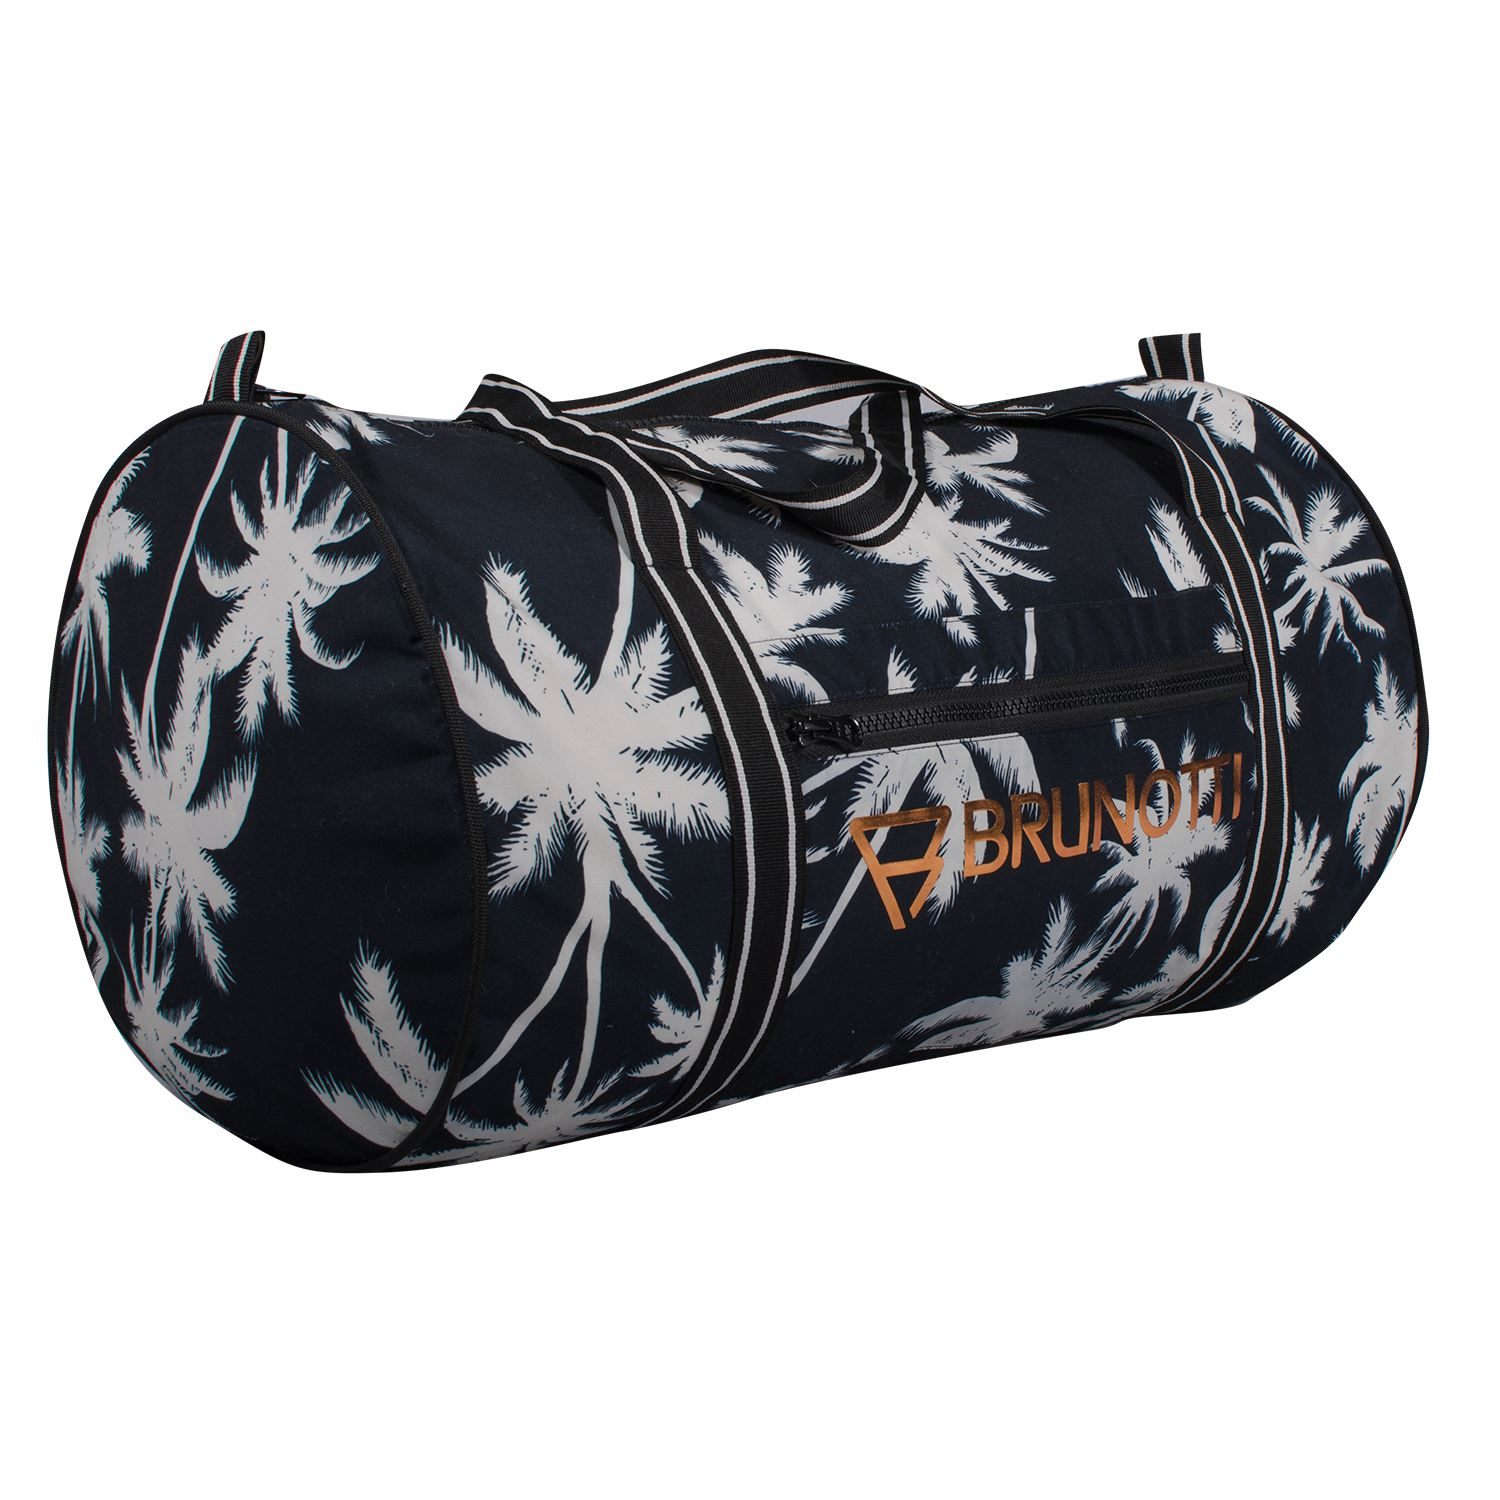 Image of Brunotti Men and Women bags & pencil case Royce Bag White size One Size